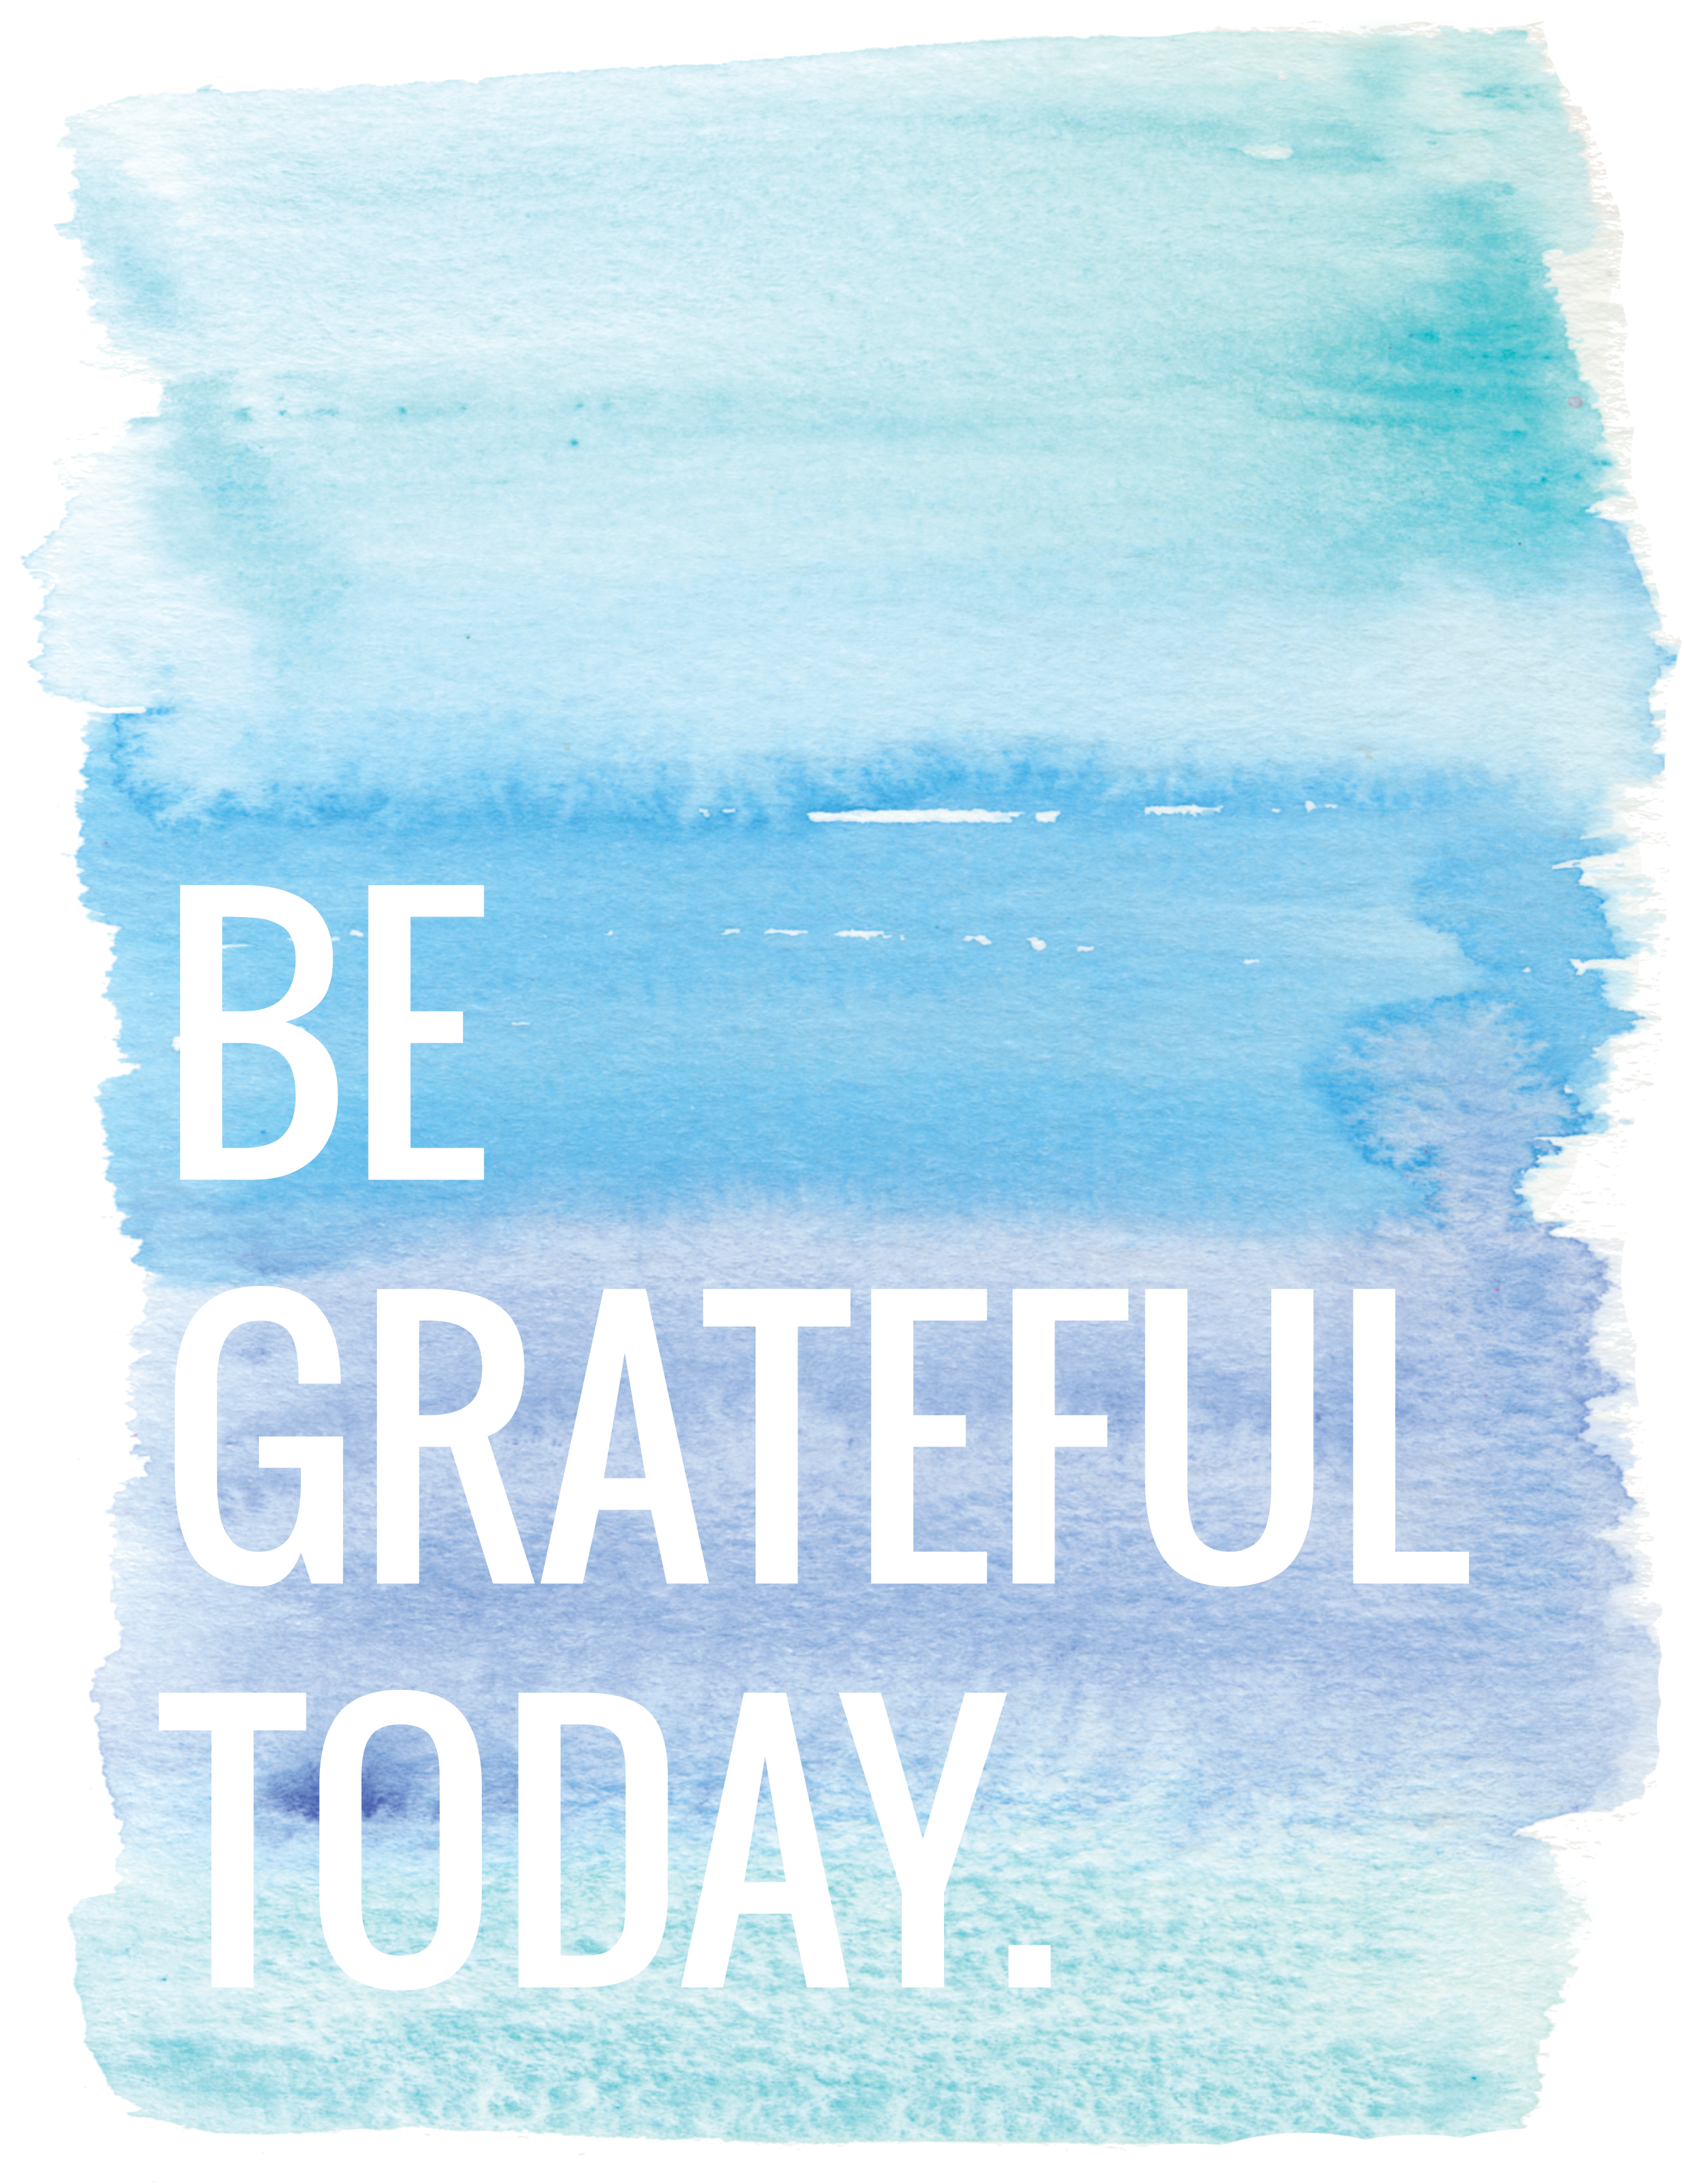 Be Grateful Today Free Art Printable Poster | Momma Society-The Community of Modern Moms | www.mommasociety.com